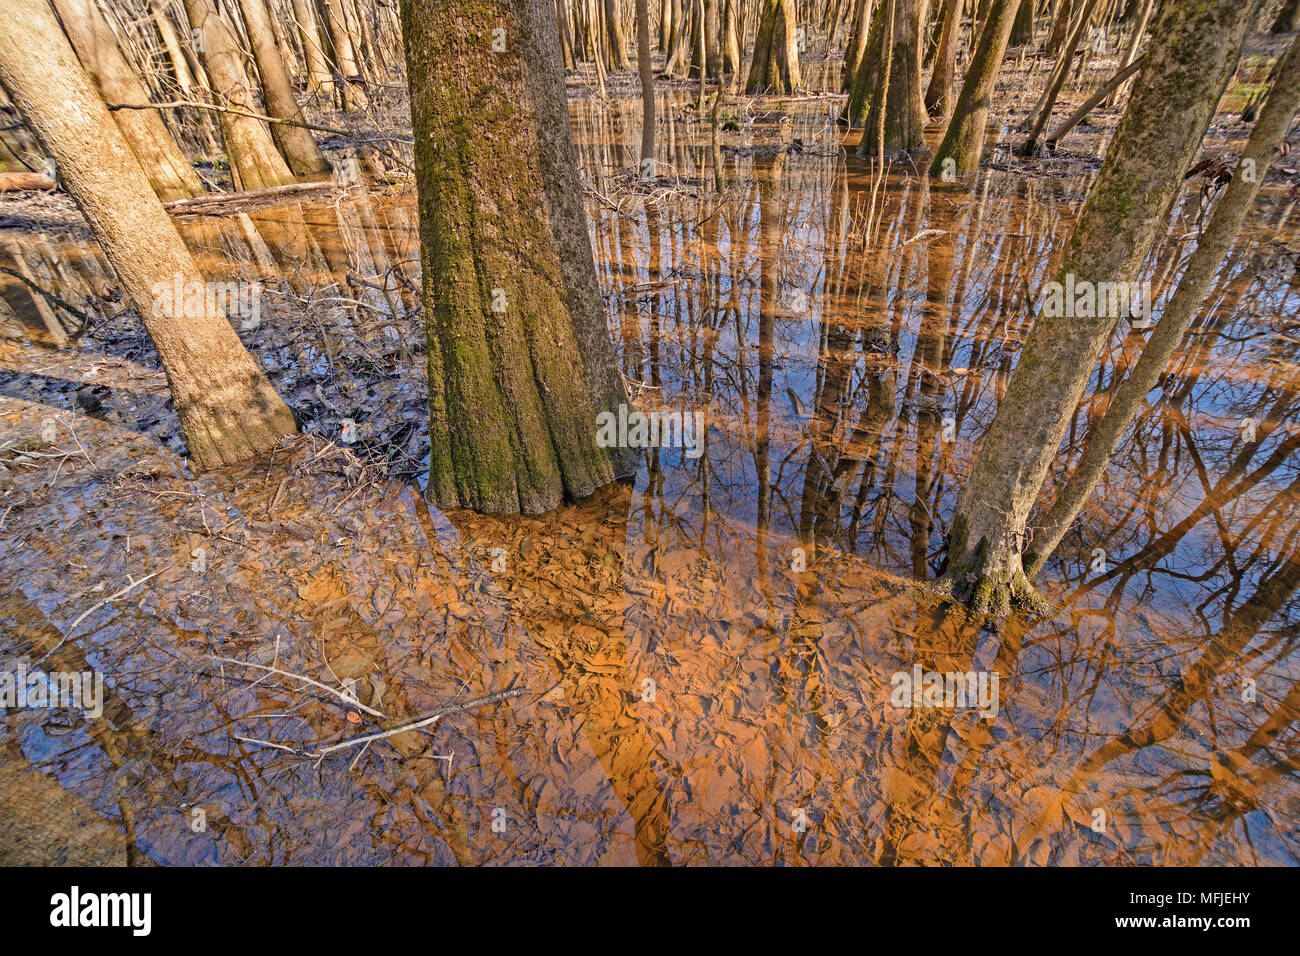 Tupelo Trees Growing in the Wetlands in Congaree National Park in South Carolina - Stock Image